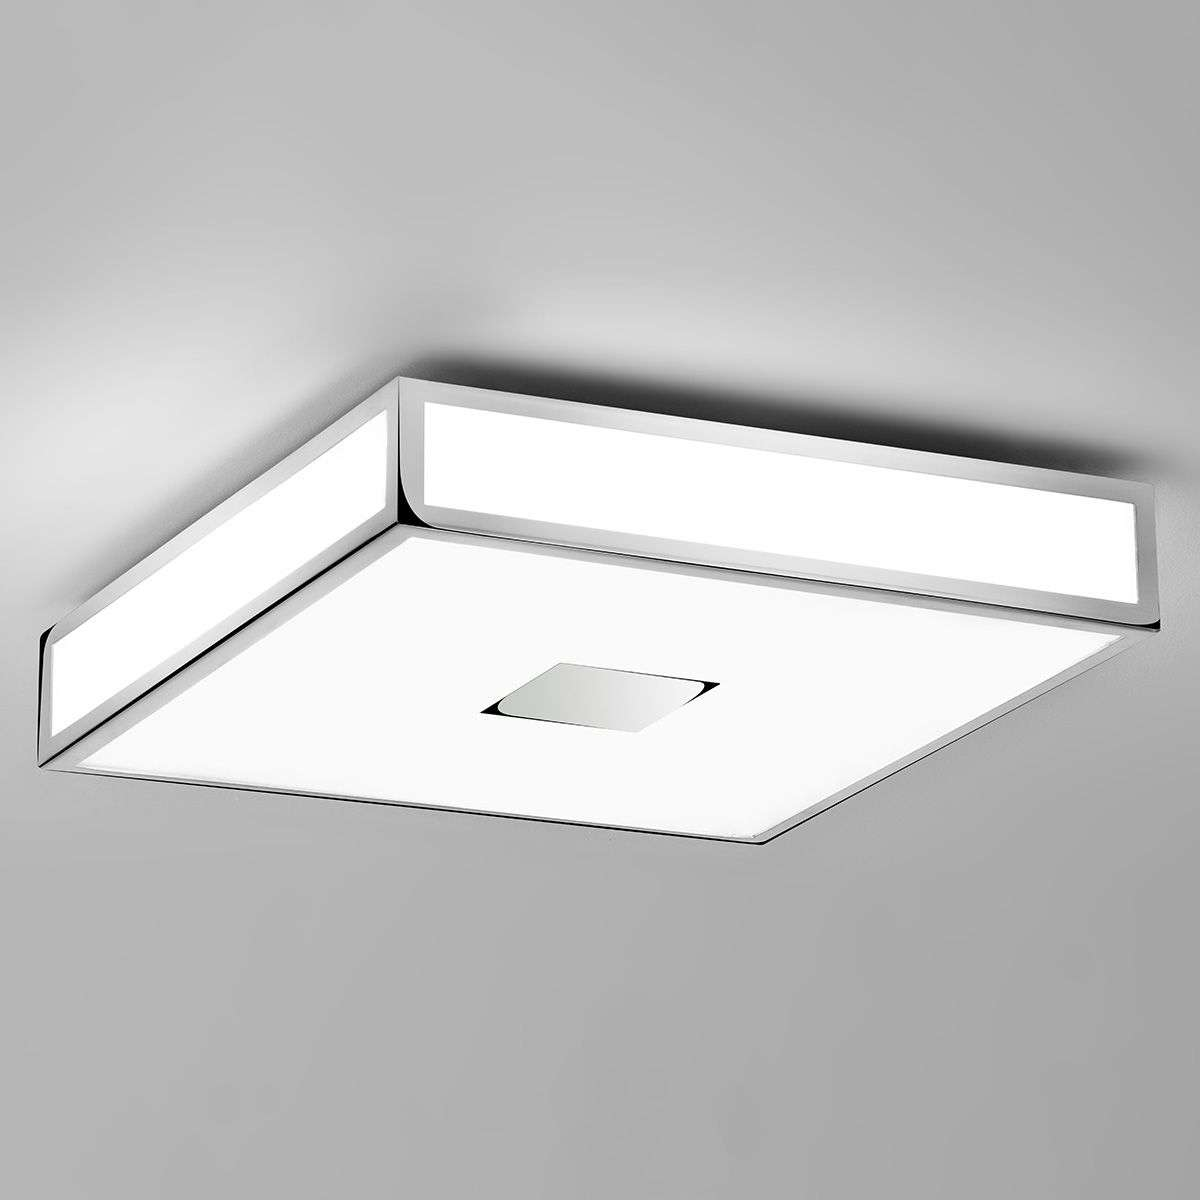 Mashiko Bathroom Ceiling Light Modern IP44 Chrome-1020301X-32